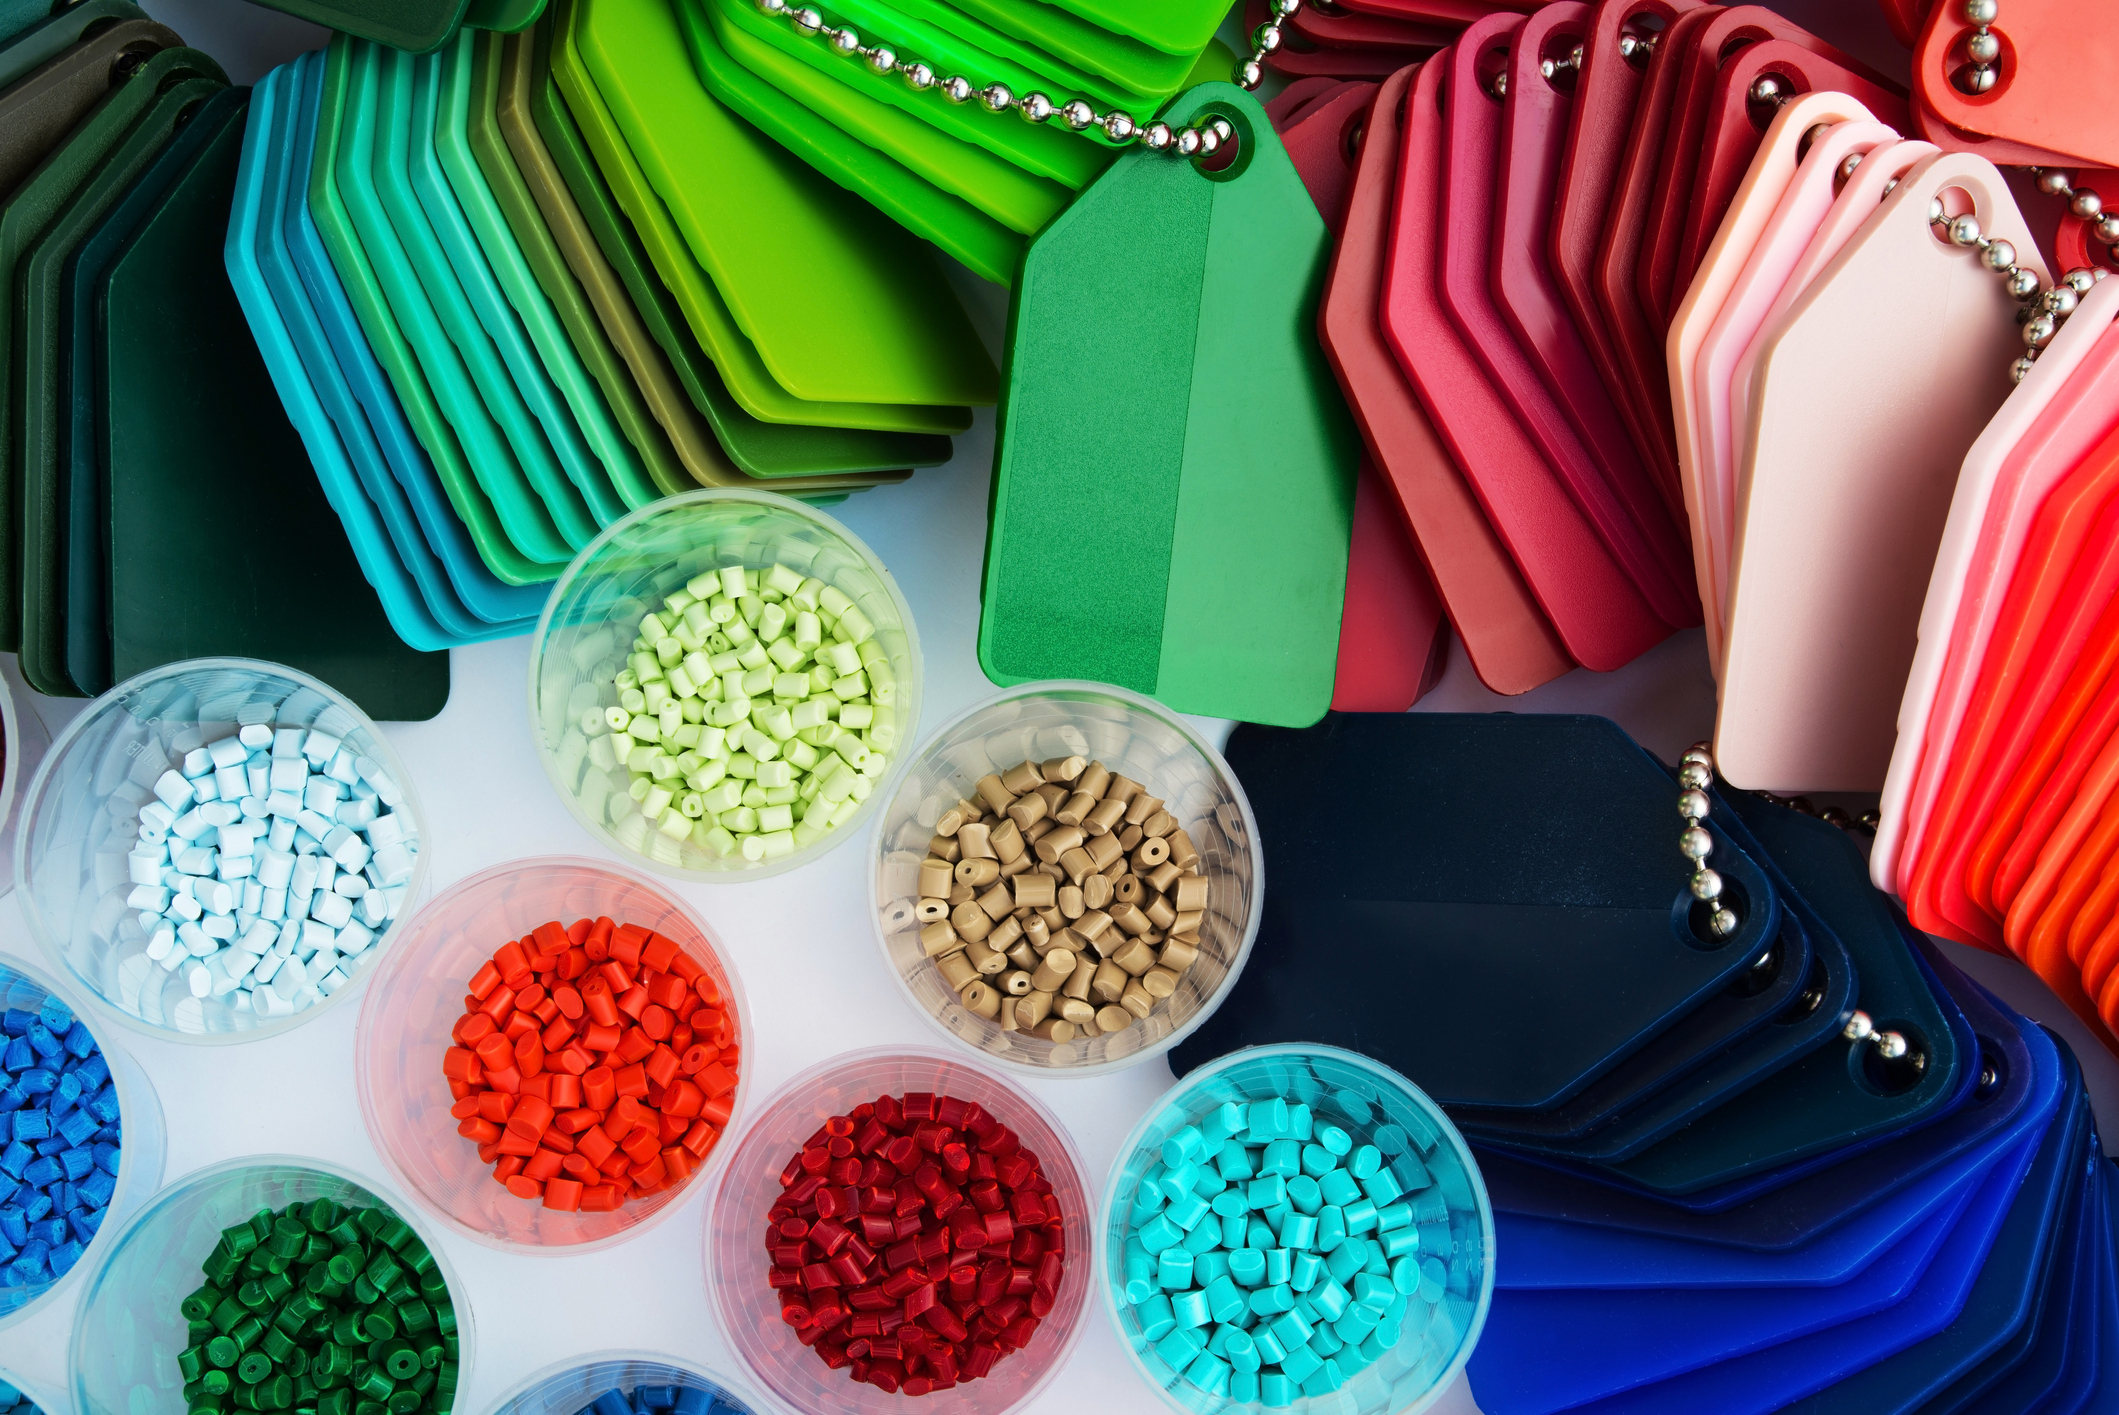 Materials Guide - Choose from a wide variety of different thermoplastic materials